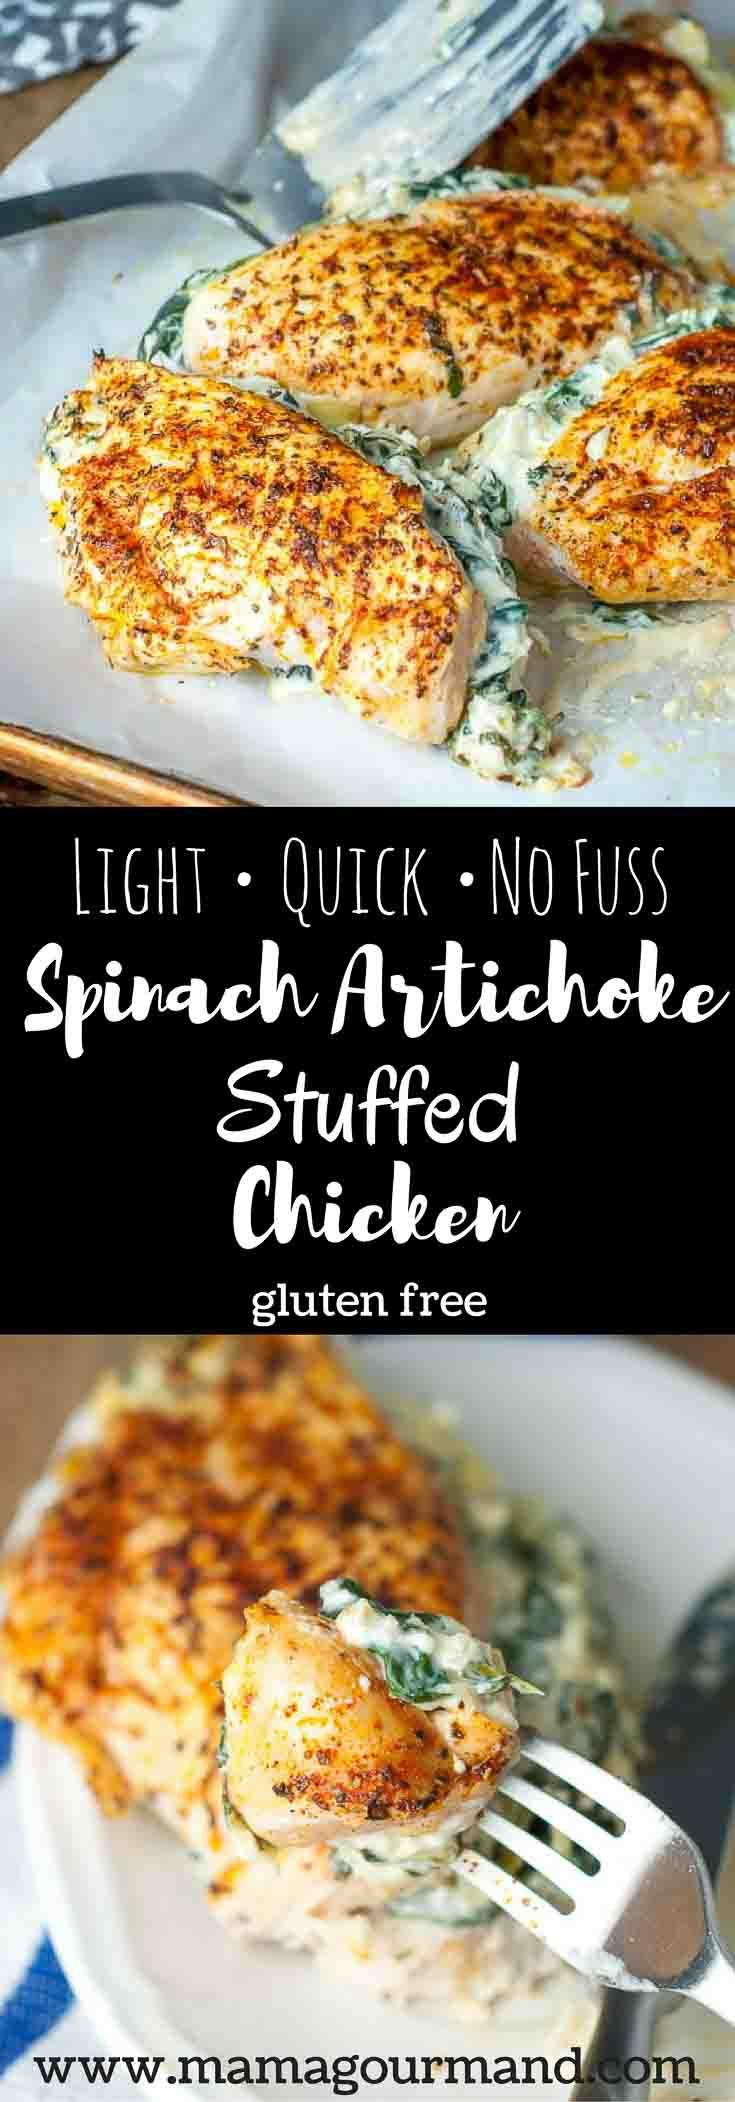 No Fuss Spinach Artichoke Stuffed Chicken combines the best version of classic flavors and rolls it into a light, quick, easy to follow recipe. http://www.mamagourmand.com via @mamagourmand